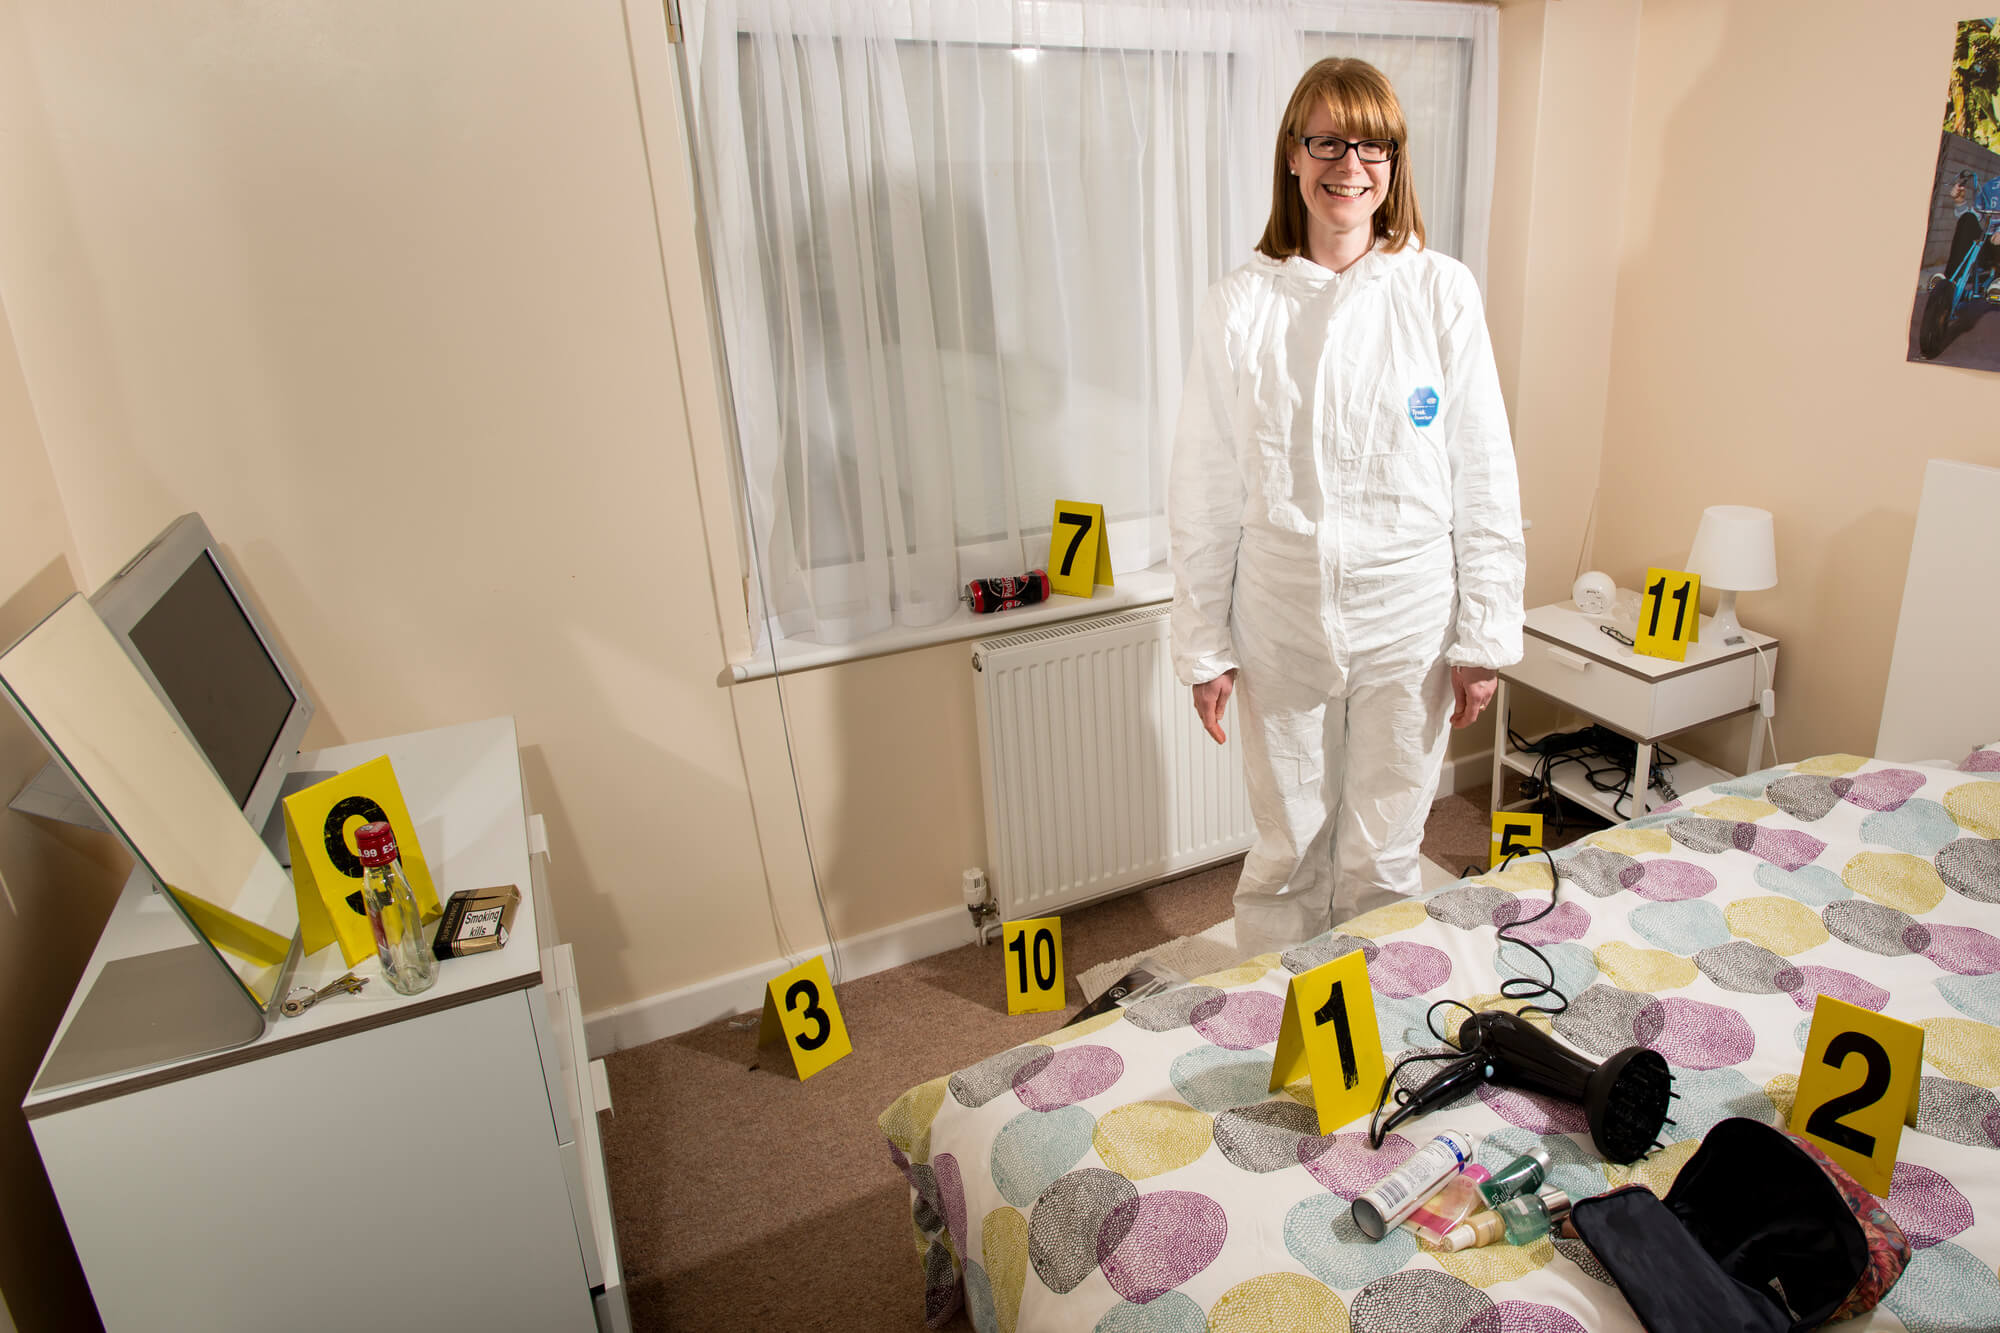 Forensic Science student Rebekah Muldowney in the Forensic Training Facility